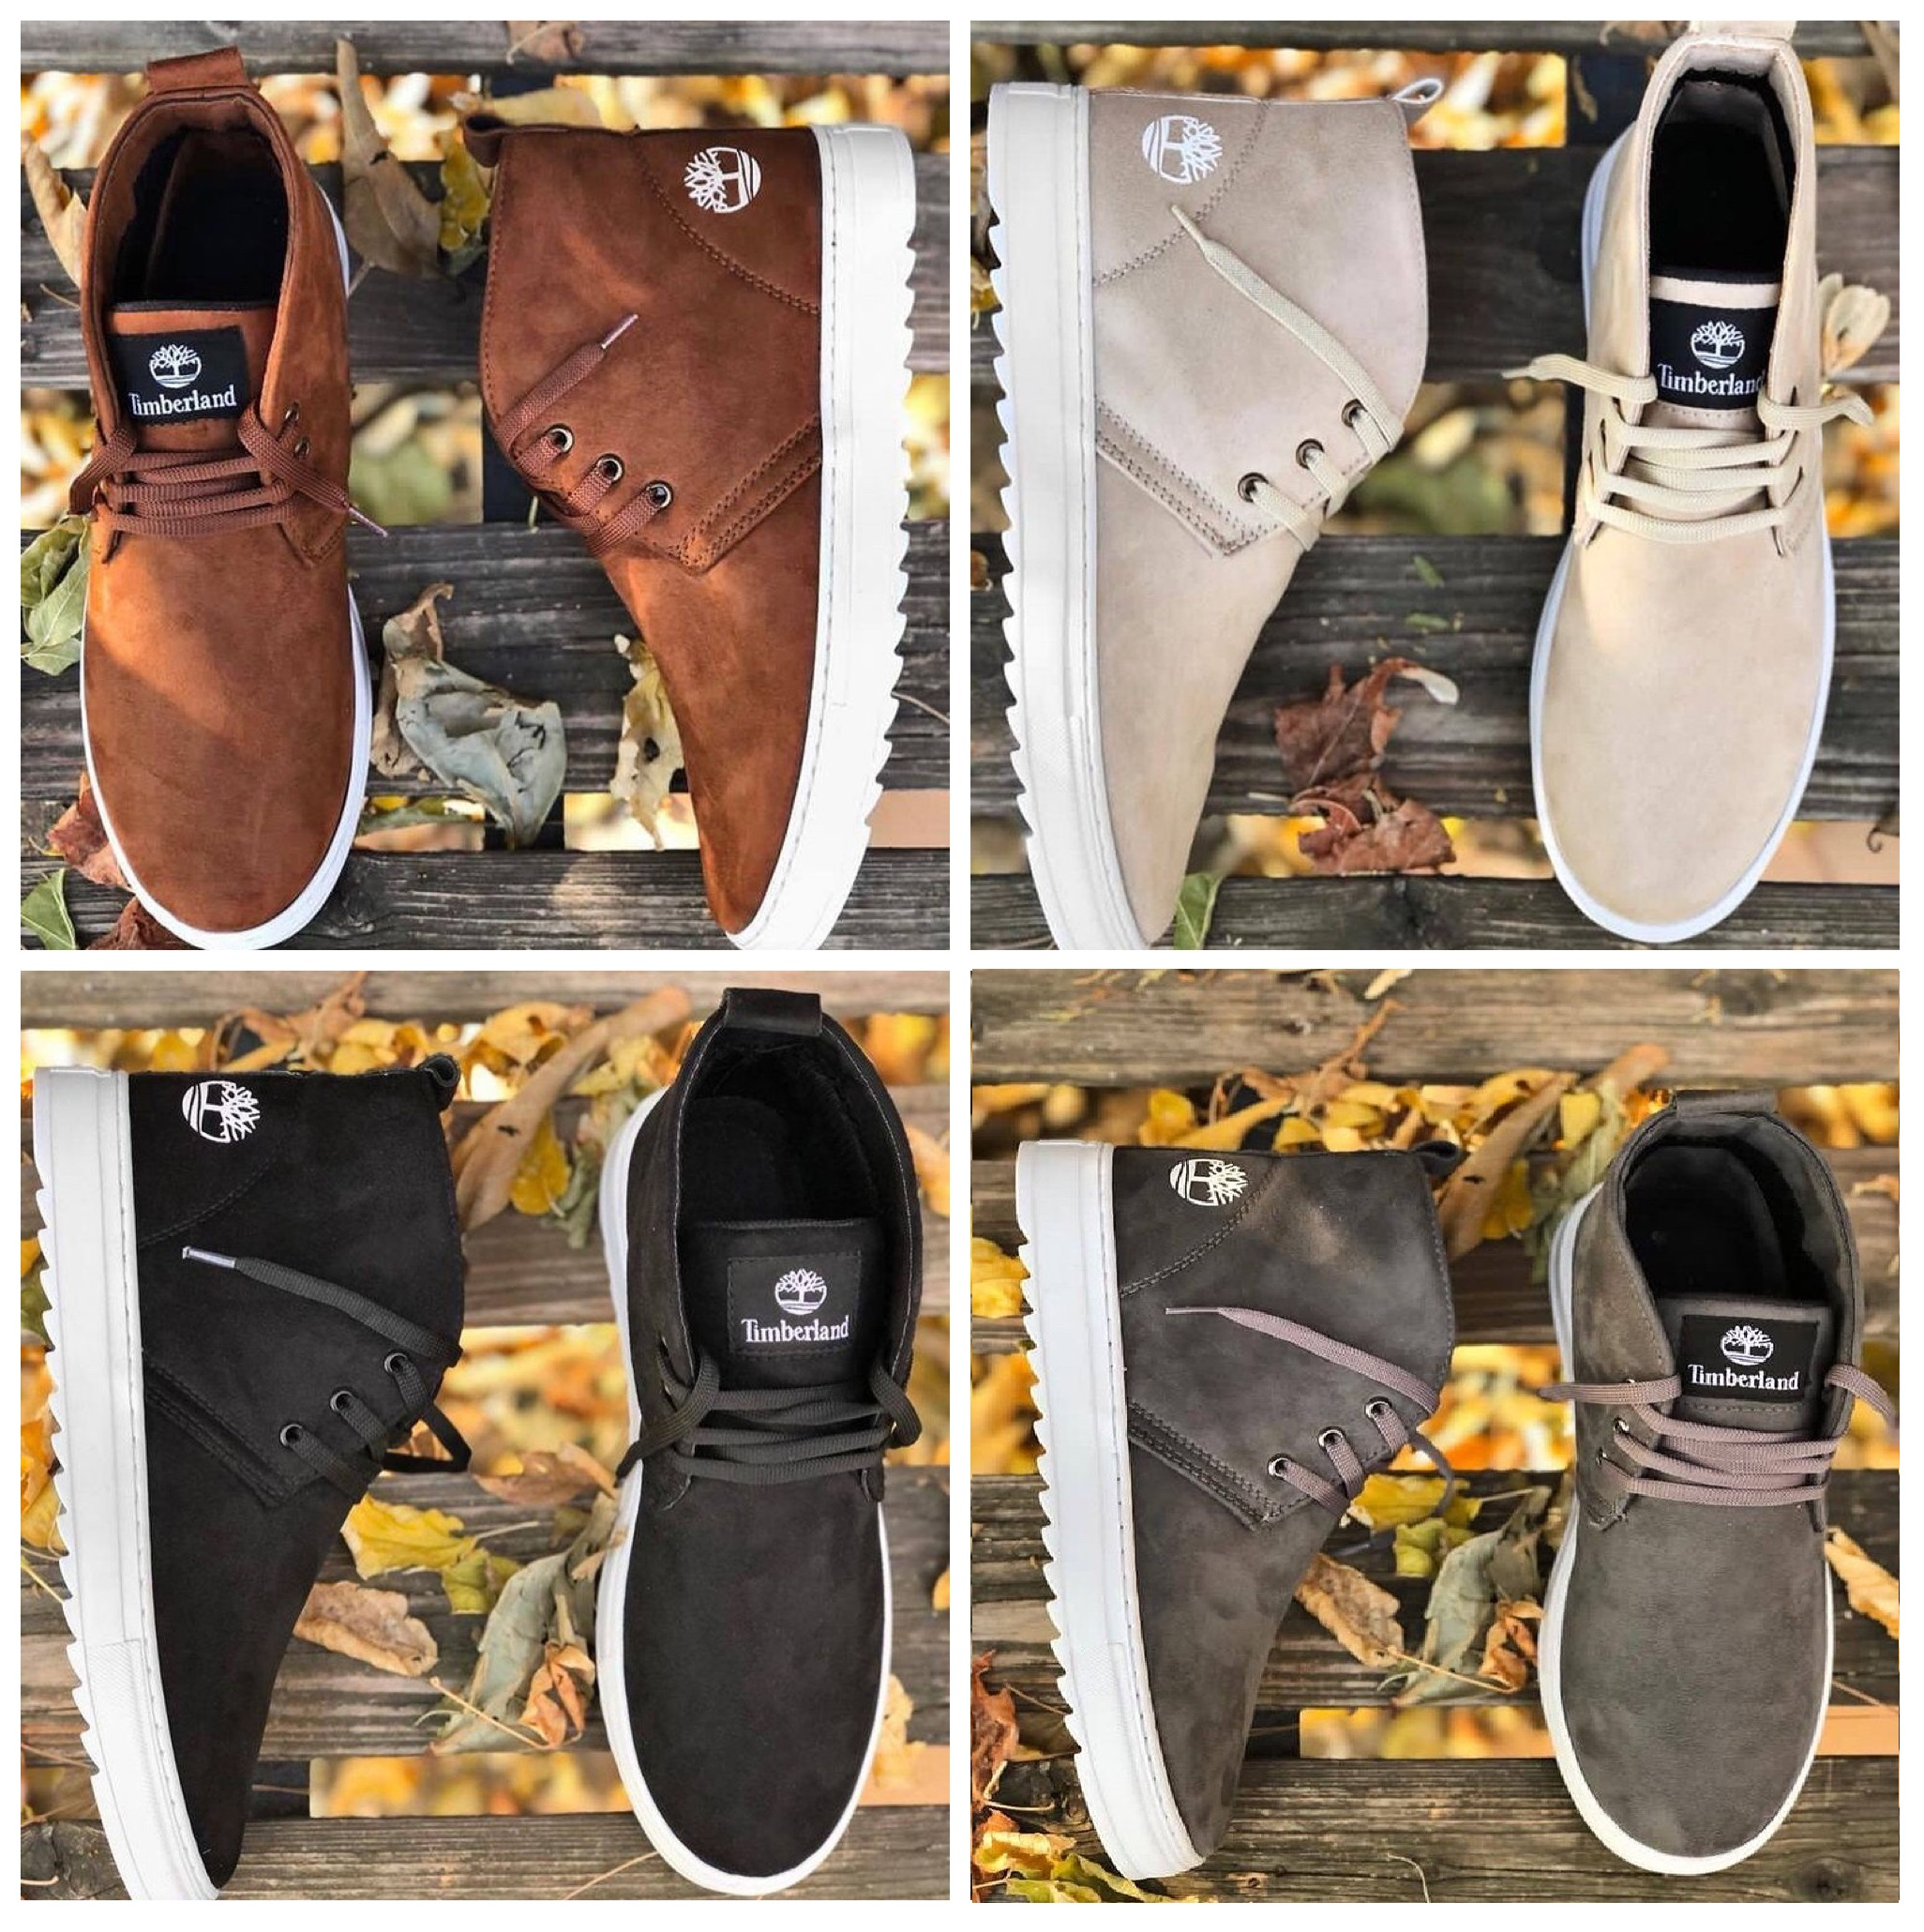 Timberland Winter Modern Classic Boots New Season Shoes Quality Replica Customers First